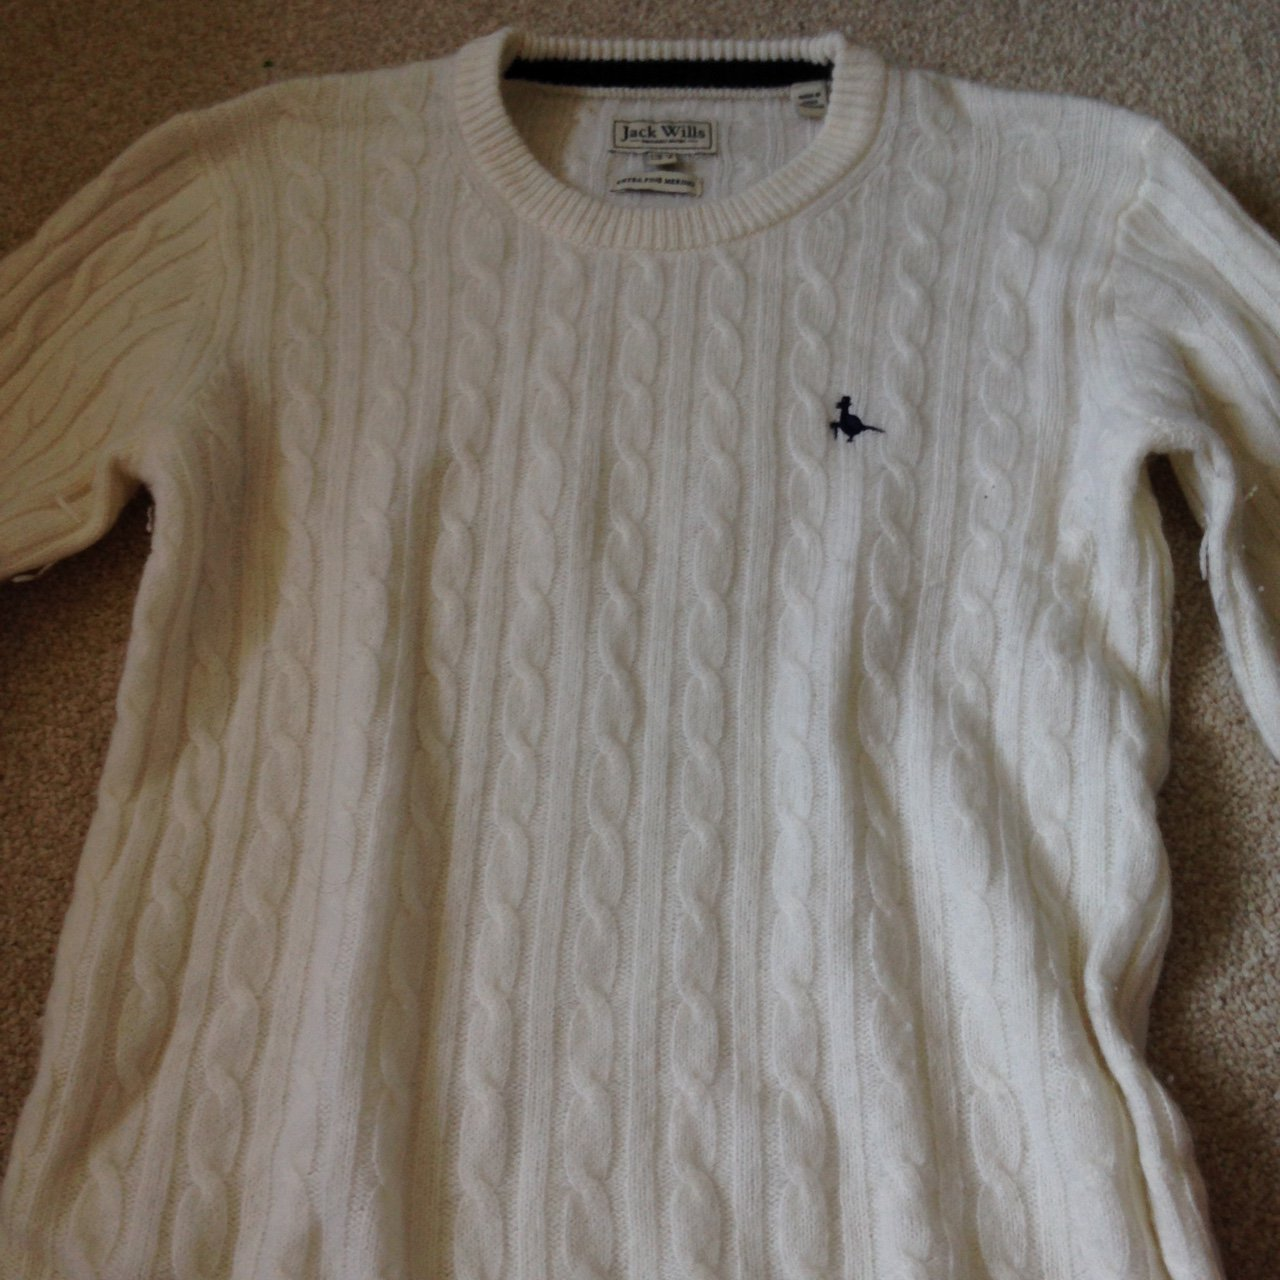 white jack wills cable knit jumper size 12 but i m a size 8 - Depop 85e0f746b